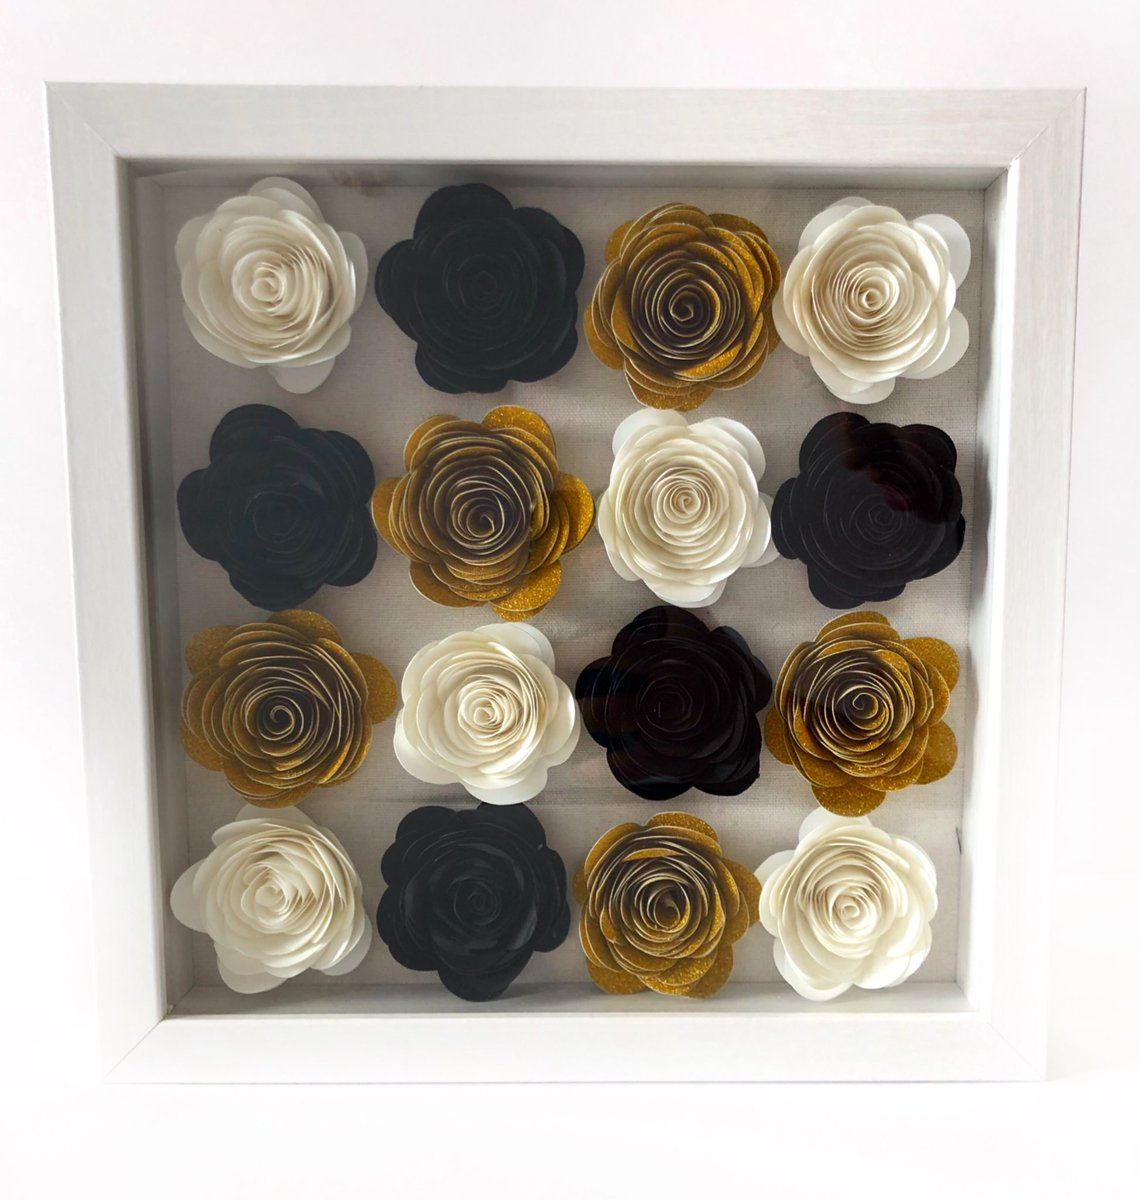 look at this flower box I made today  white, black, and gold with no lettering pic.twitter.com/yb1ETlCpA6